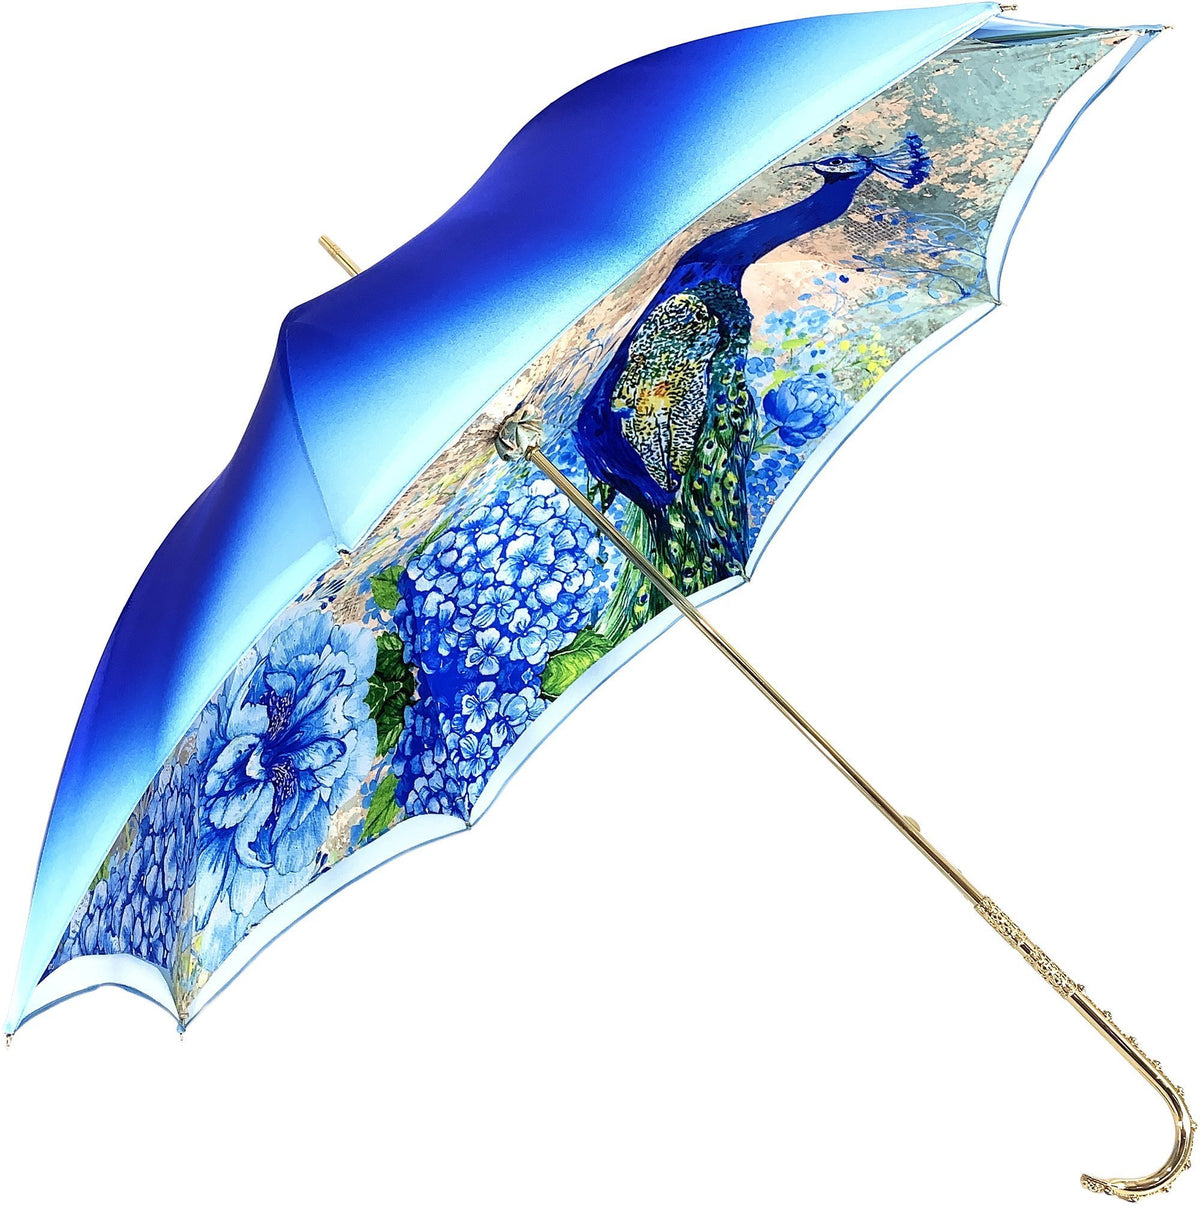 HANDMADE PEACOCK DOUBLE CLOTH UMBRELLA